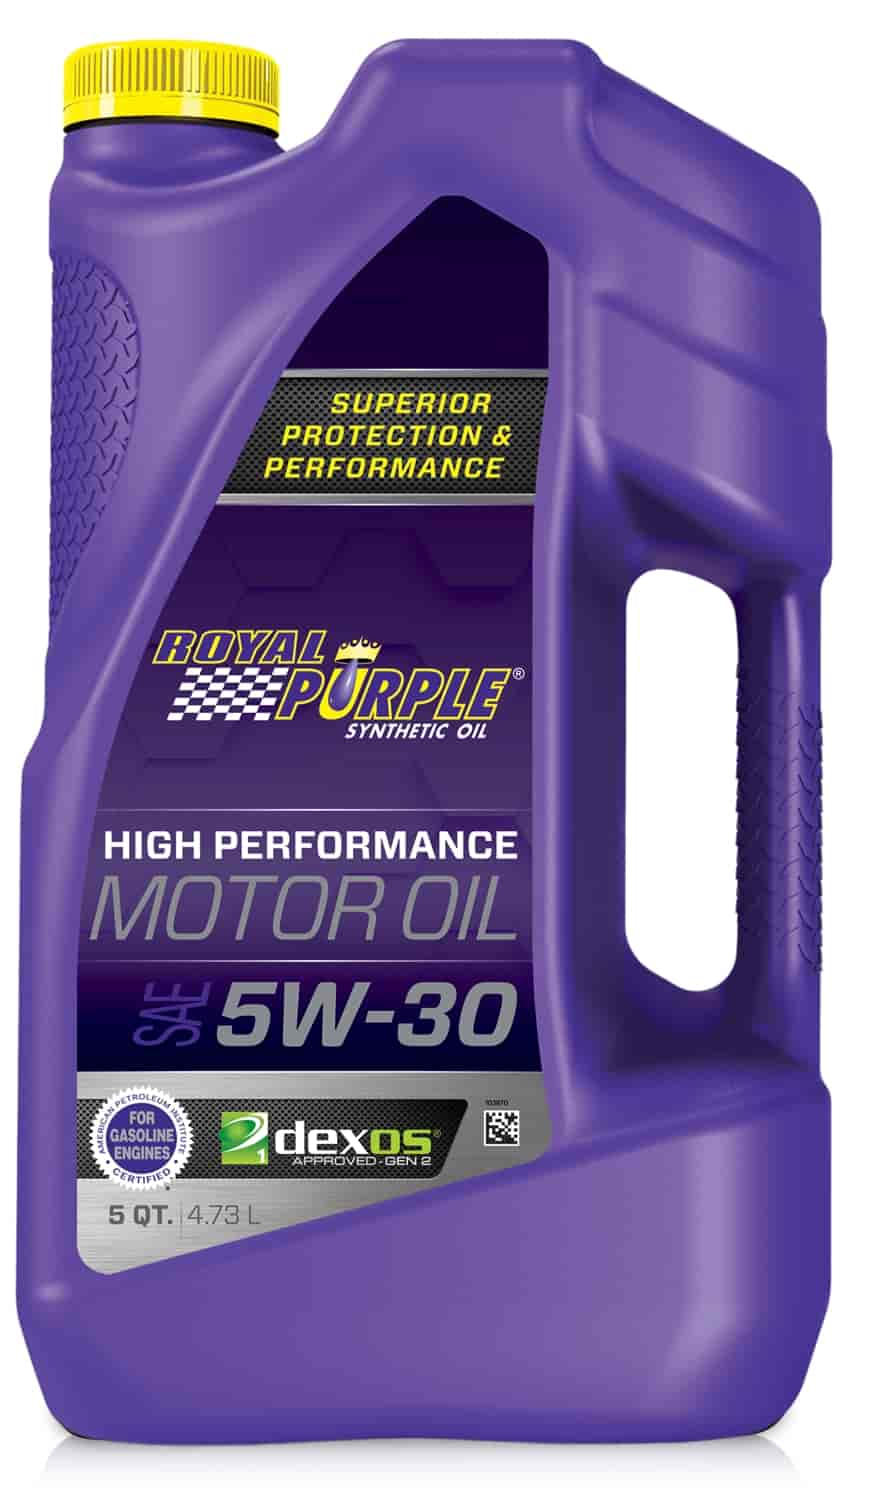 Royal Purple 51530 - Royal Purple Synthetic Oils and Lubricants